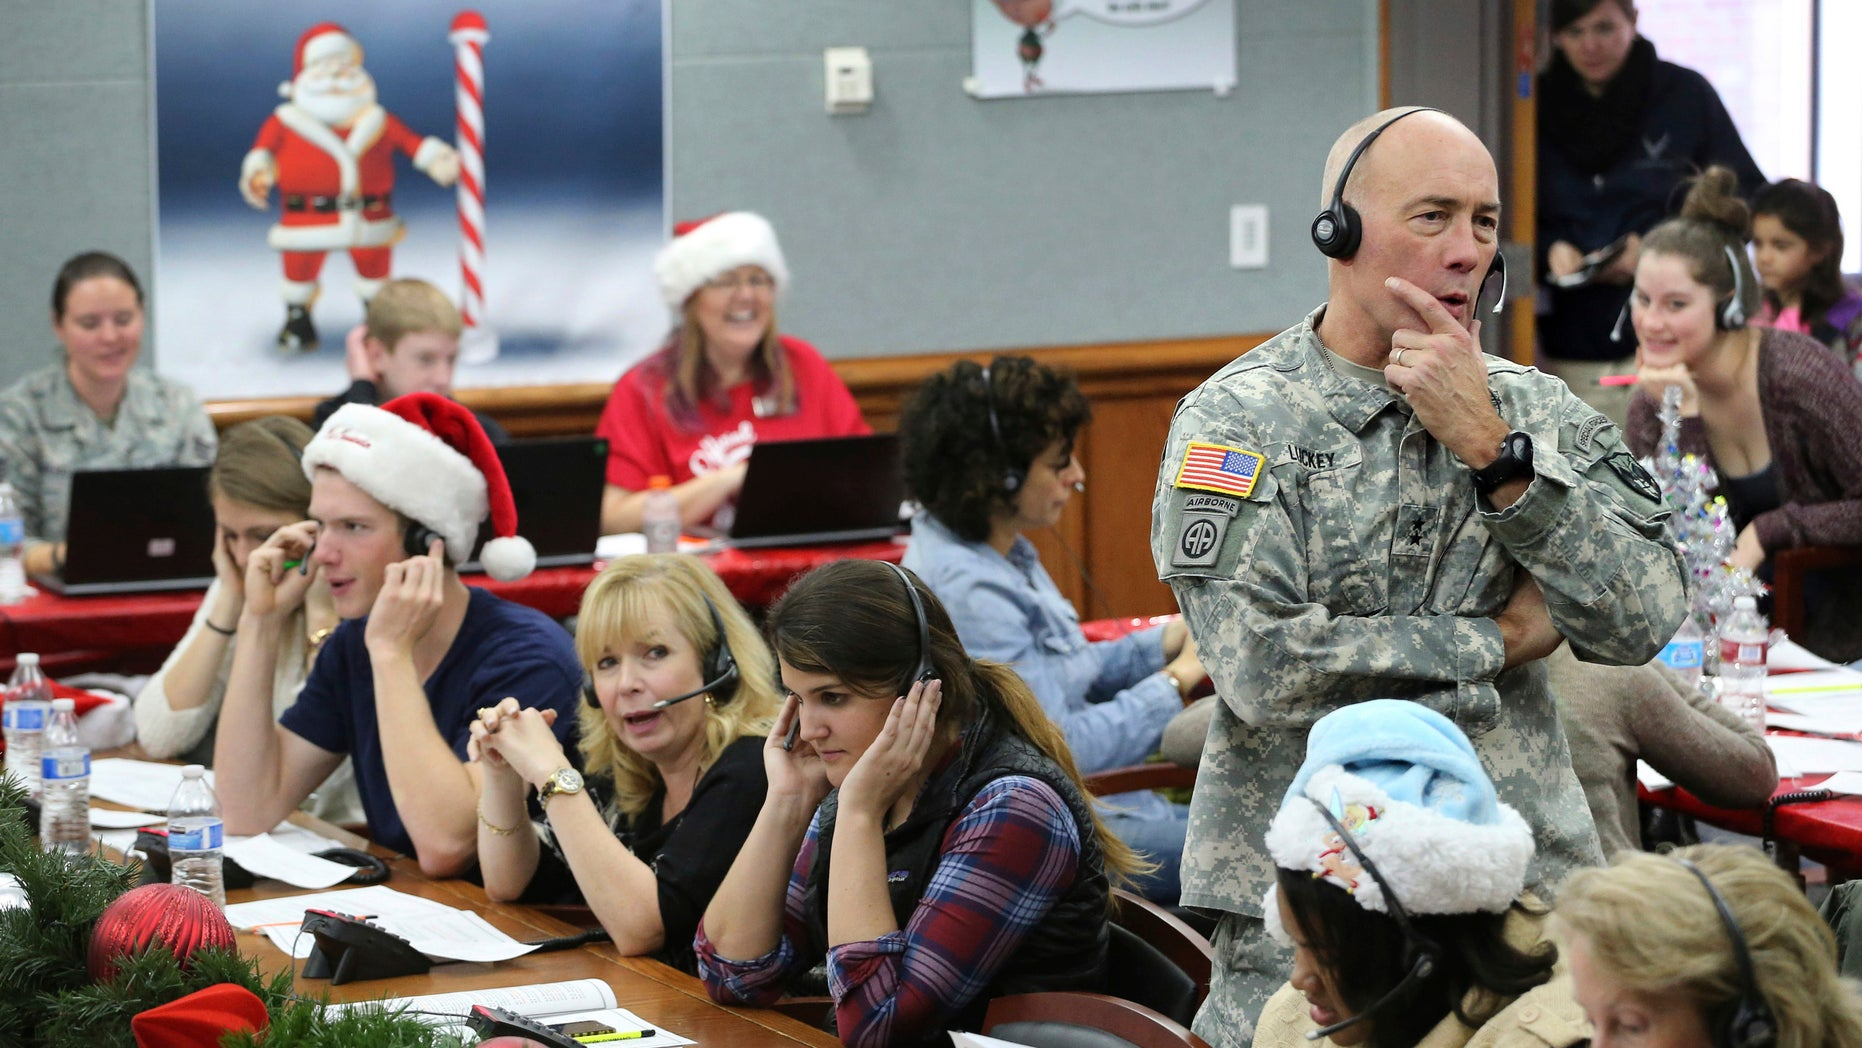 In this Dec. 24, 2014, file photo, NORAD Chief of Staff Maj. Gen. Charles D. Luckey takes a call while volunteering at the NORAD Tracks Santa center at Peterson Air Force Base in Colorado Springs, Colo. Hundreds of volunteers will help answer the phones from children around the world calling for Santa when the program resumes on Monday, Dec. 24, 2018, for the 63rd year. (AP Photo/Brennan Linsley, File)